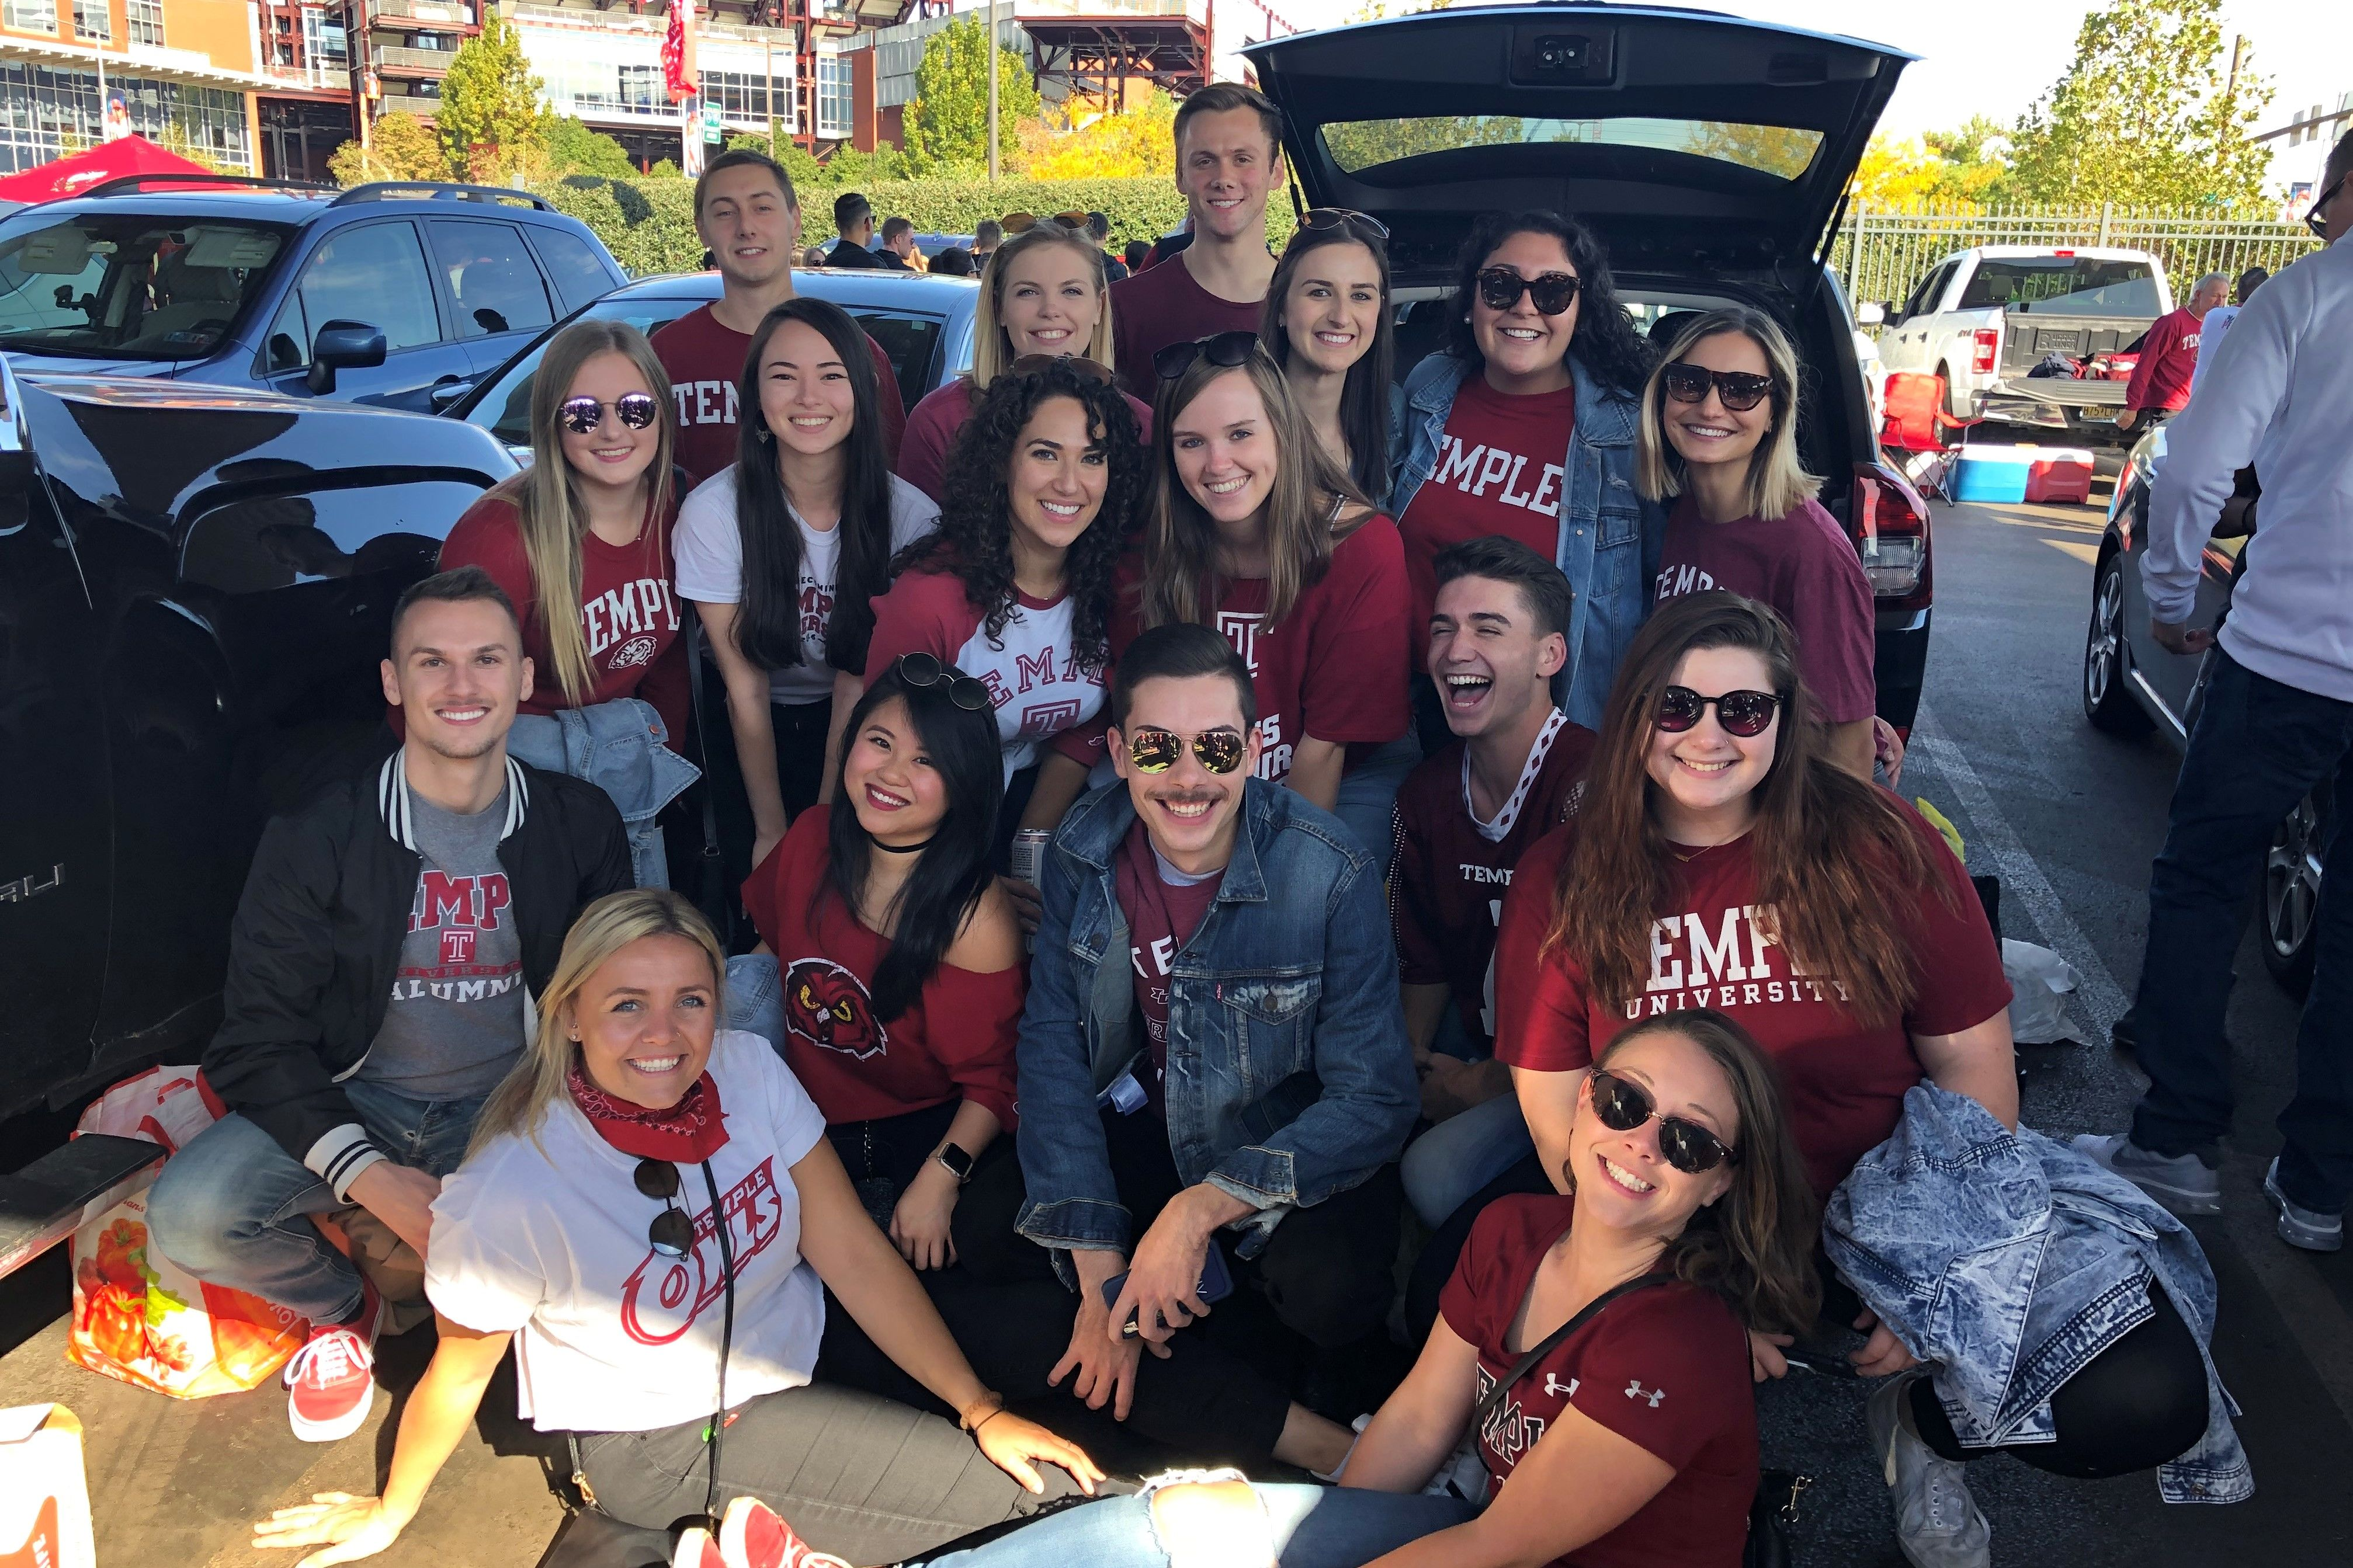 A group of revelers join Tabitha Miller at the Alumni Tailgate.